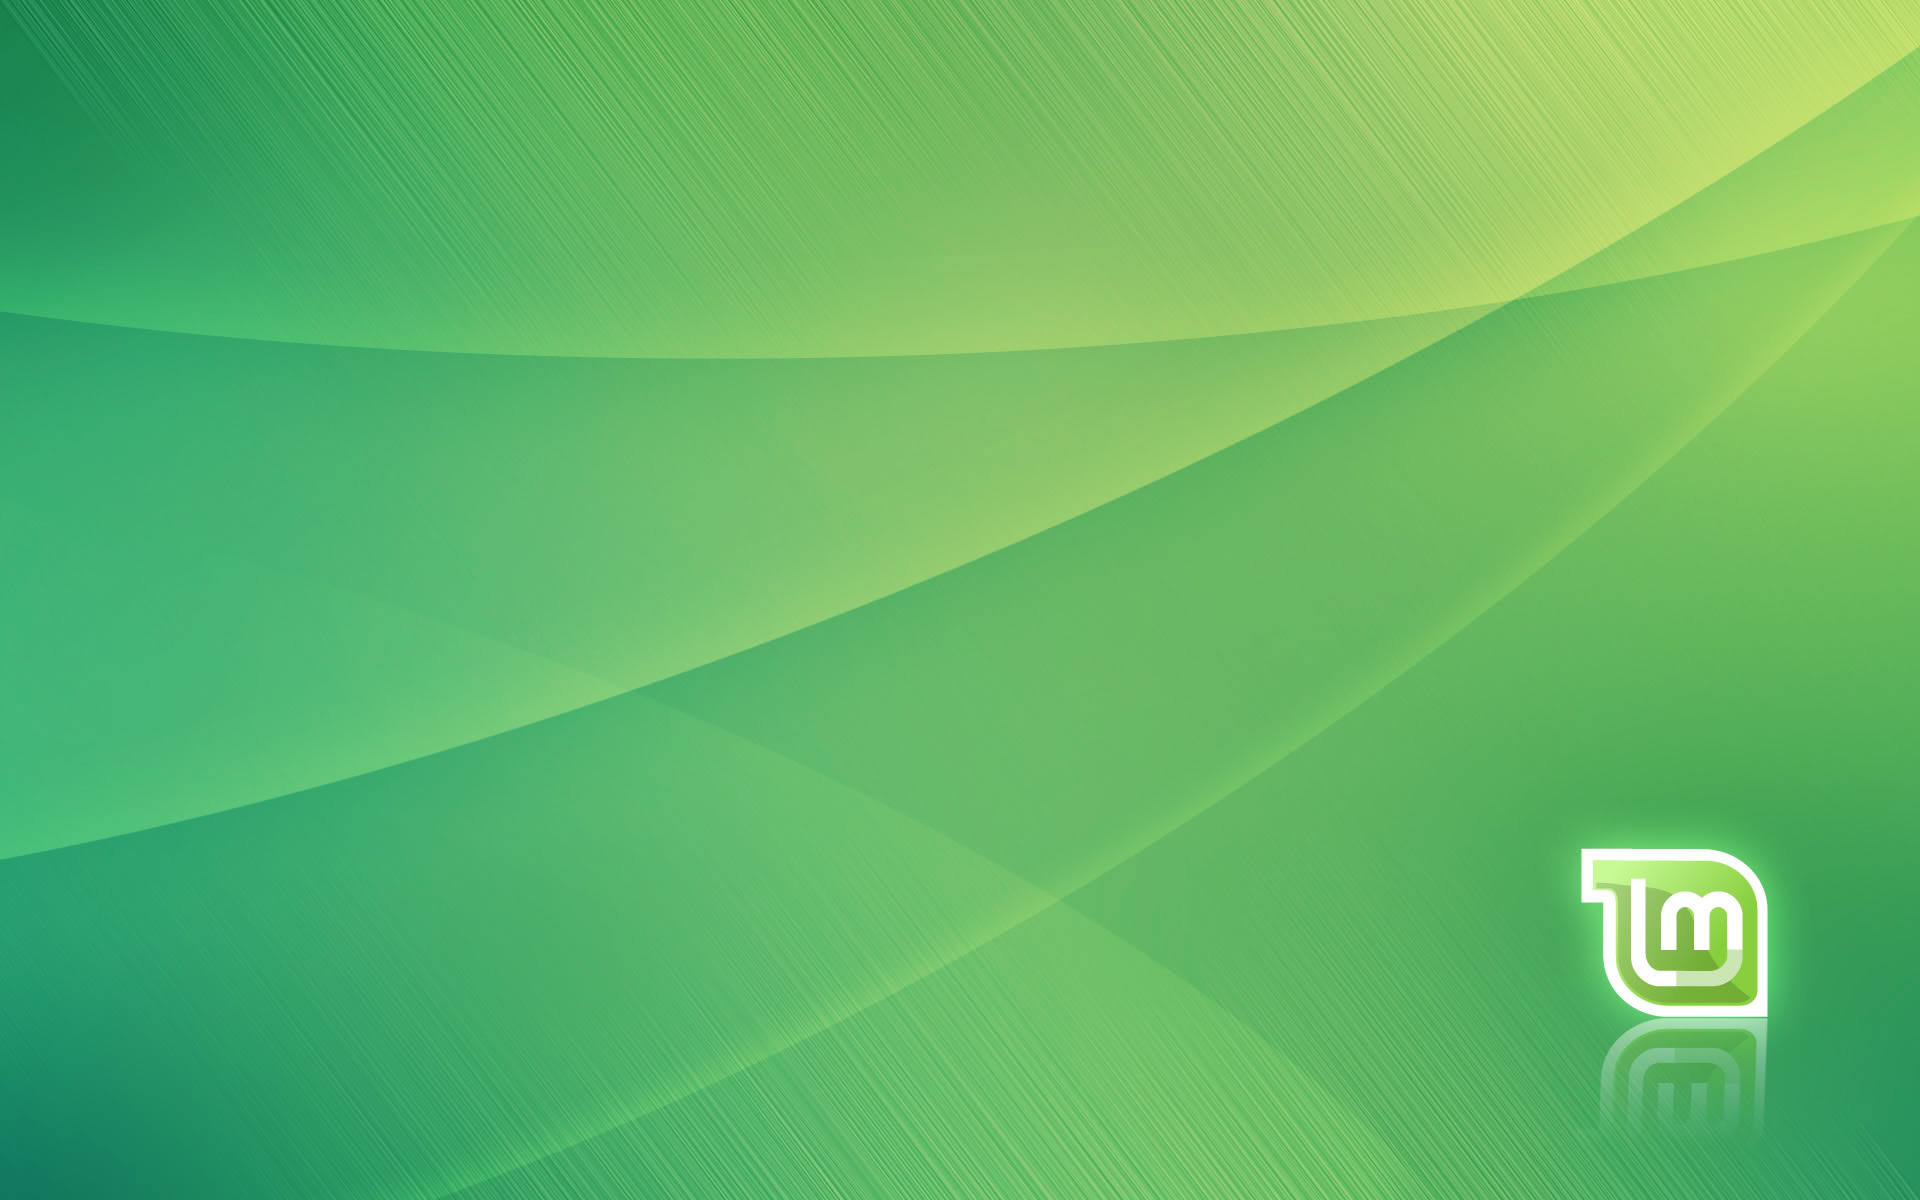 Res: 1920x1200, Awesome Linux Mint Wallpaper 45417